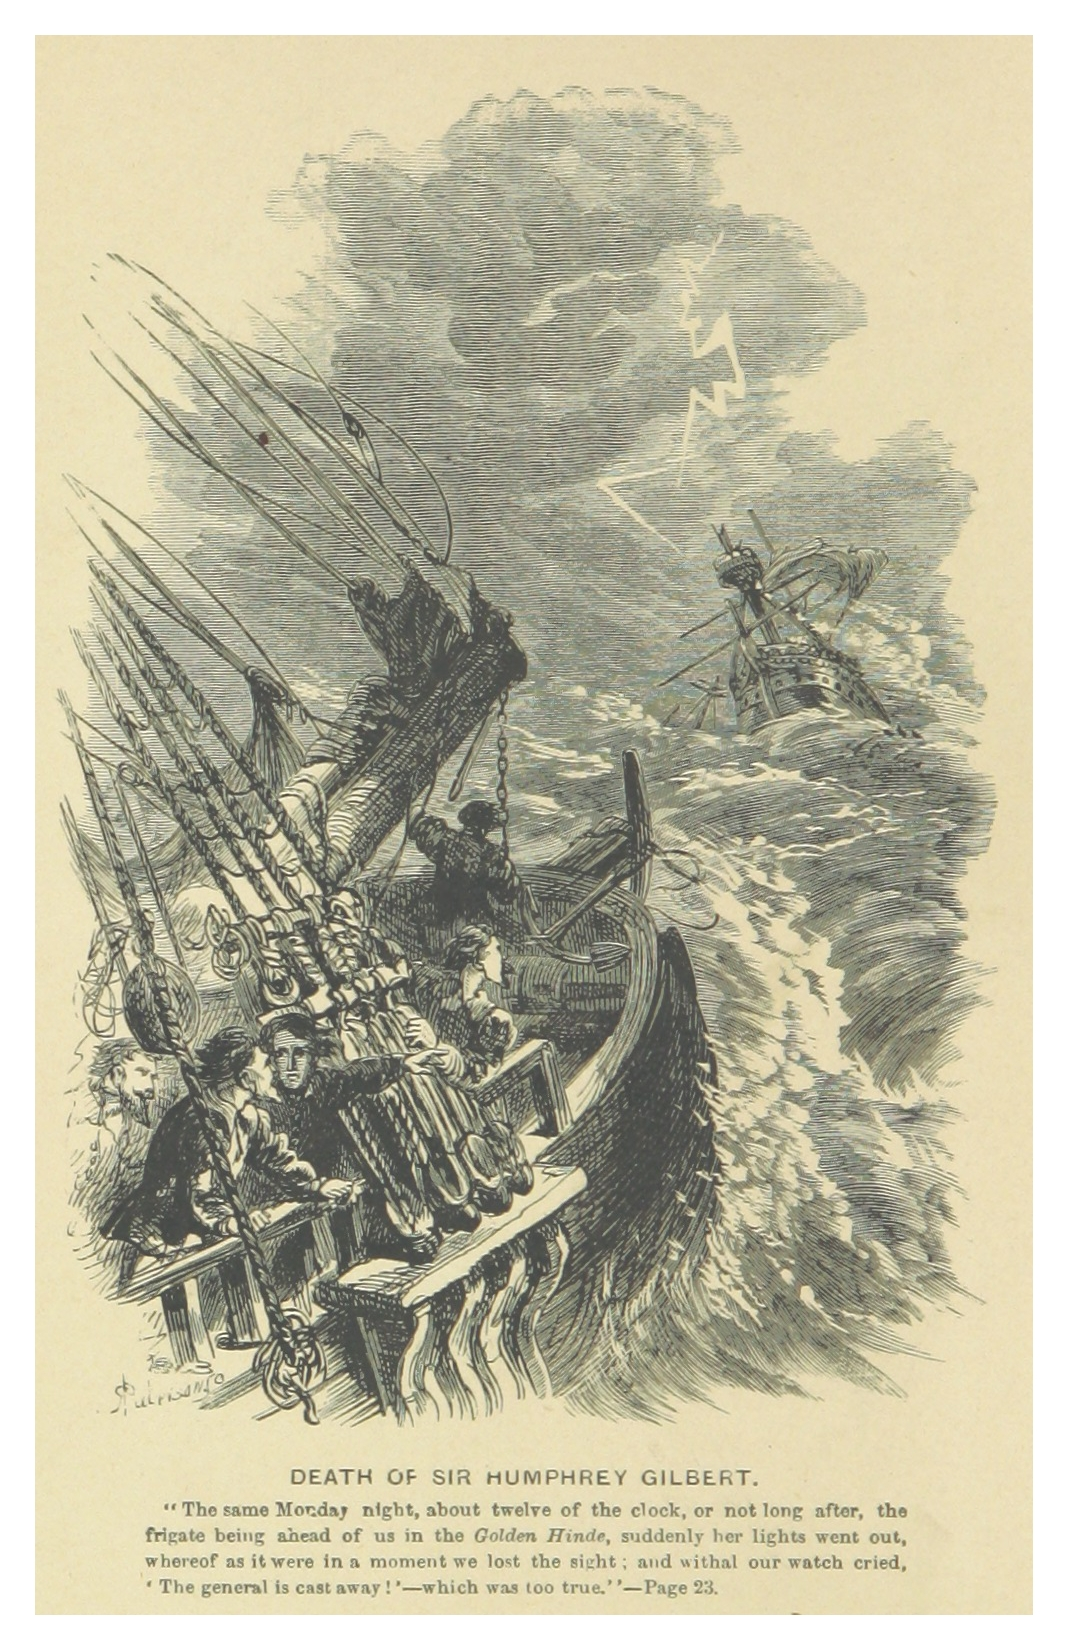 From British Enterprise beyond the Seas (Fyfe 1863) Death of Sir Humphrey Gilbert.